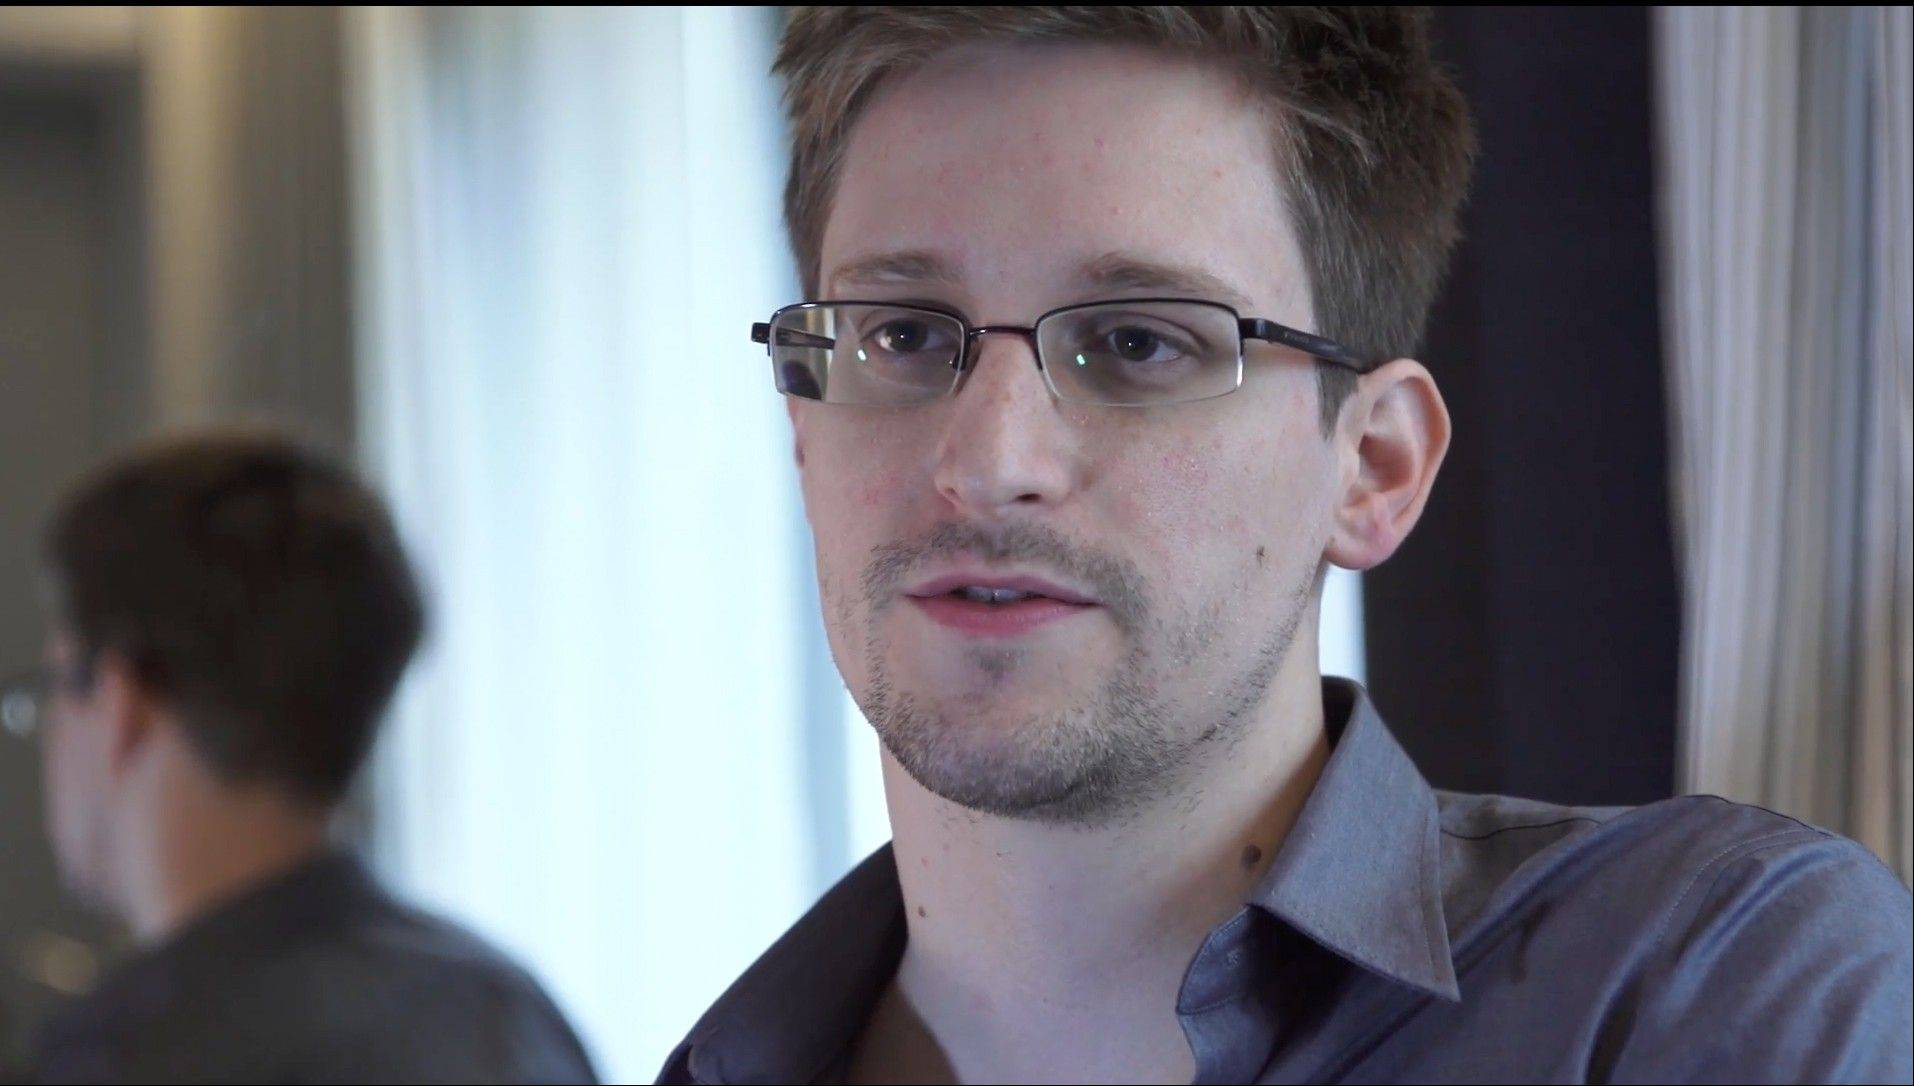 This Sunday, June 9, 2013 file photo provided by The Guardian Newspaper in London shows Edward Snowden, in Hong Kong. US leaker Edward Snowden's father is making plans to travel to Russia to visit his son. Snowden has been granted a document that allows him to leave the transit zone of a Moscow airport and enter Russia. Snowden has applied for temporary asylum in Rusia last week after his attempts to leave the airport were thwarted. The United States wants him sent home to face prosecution for espionage.